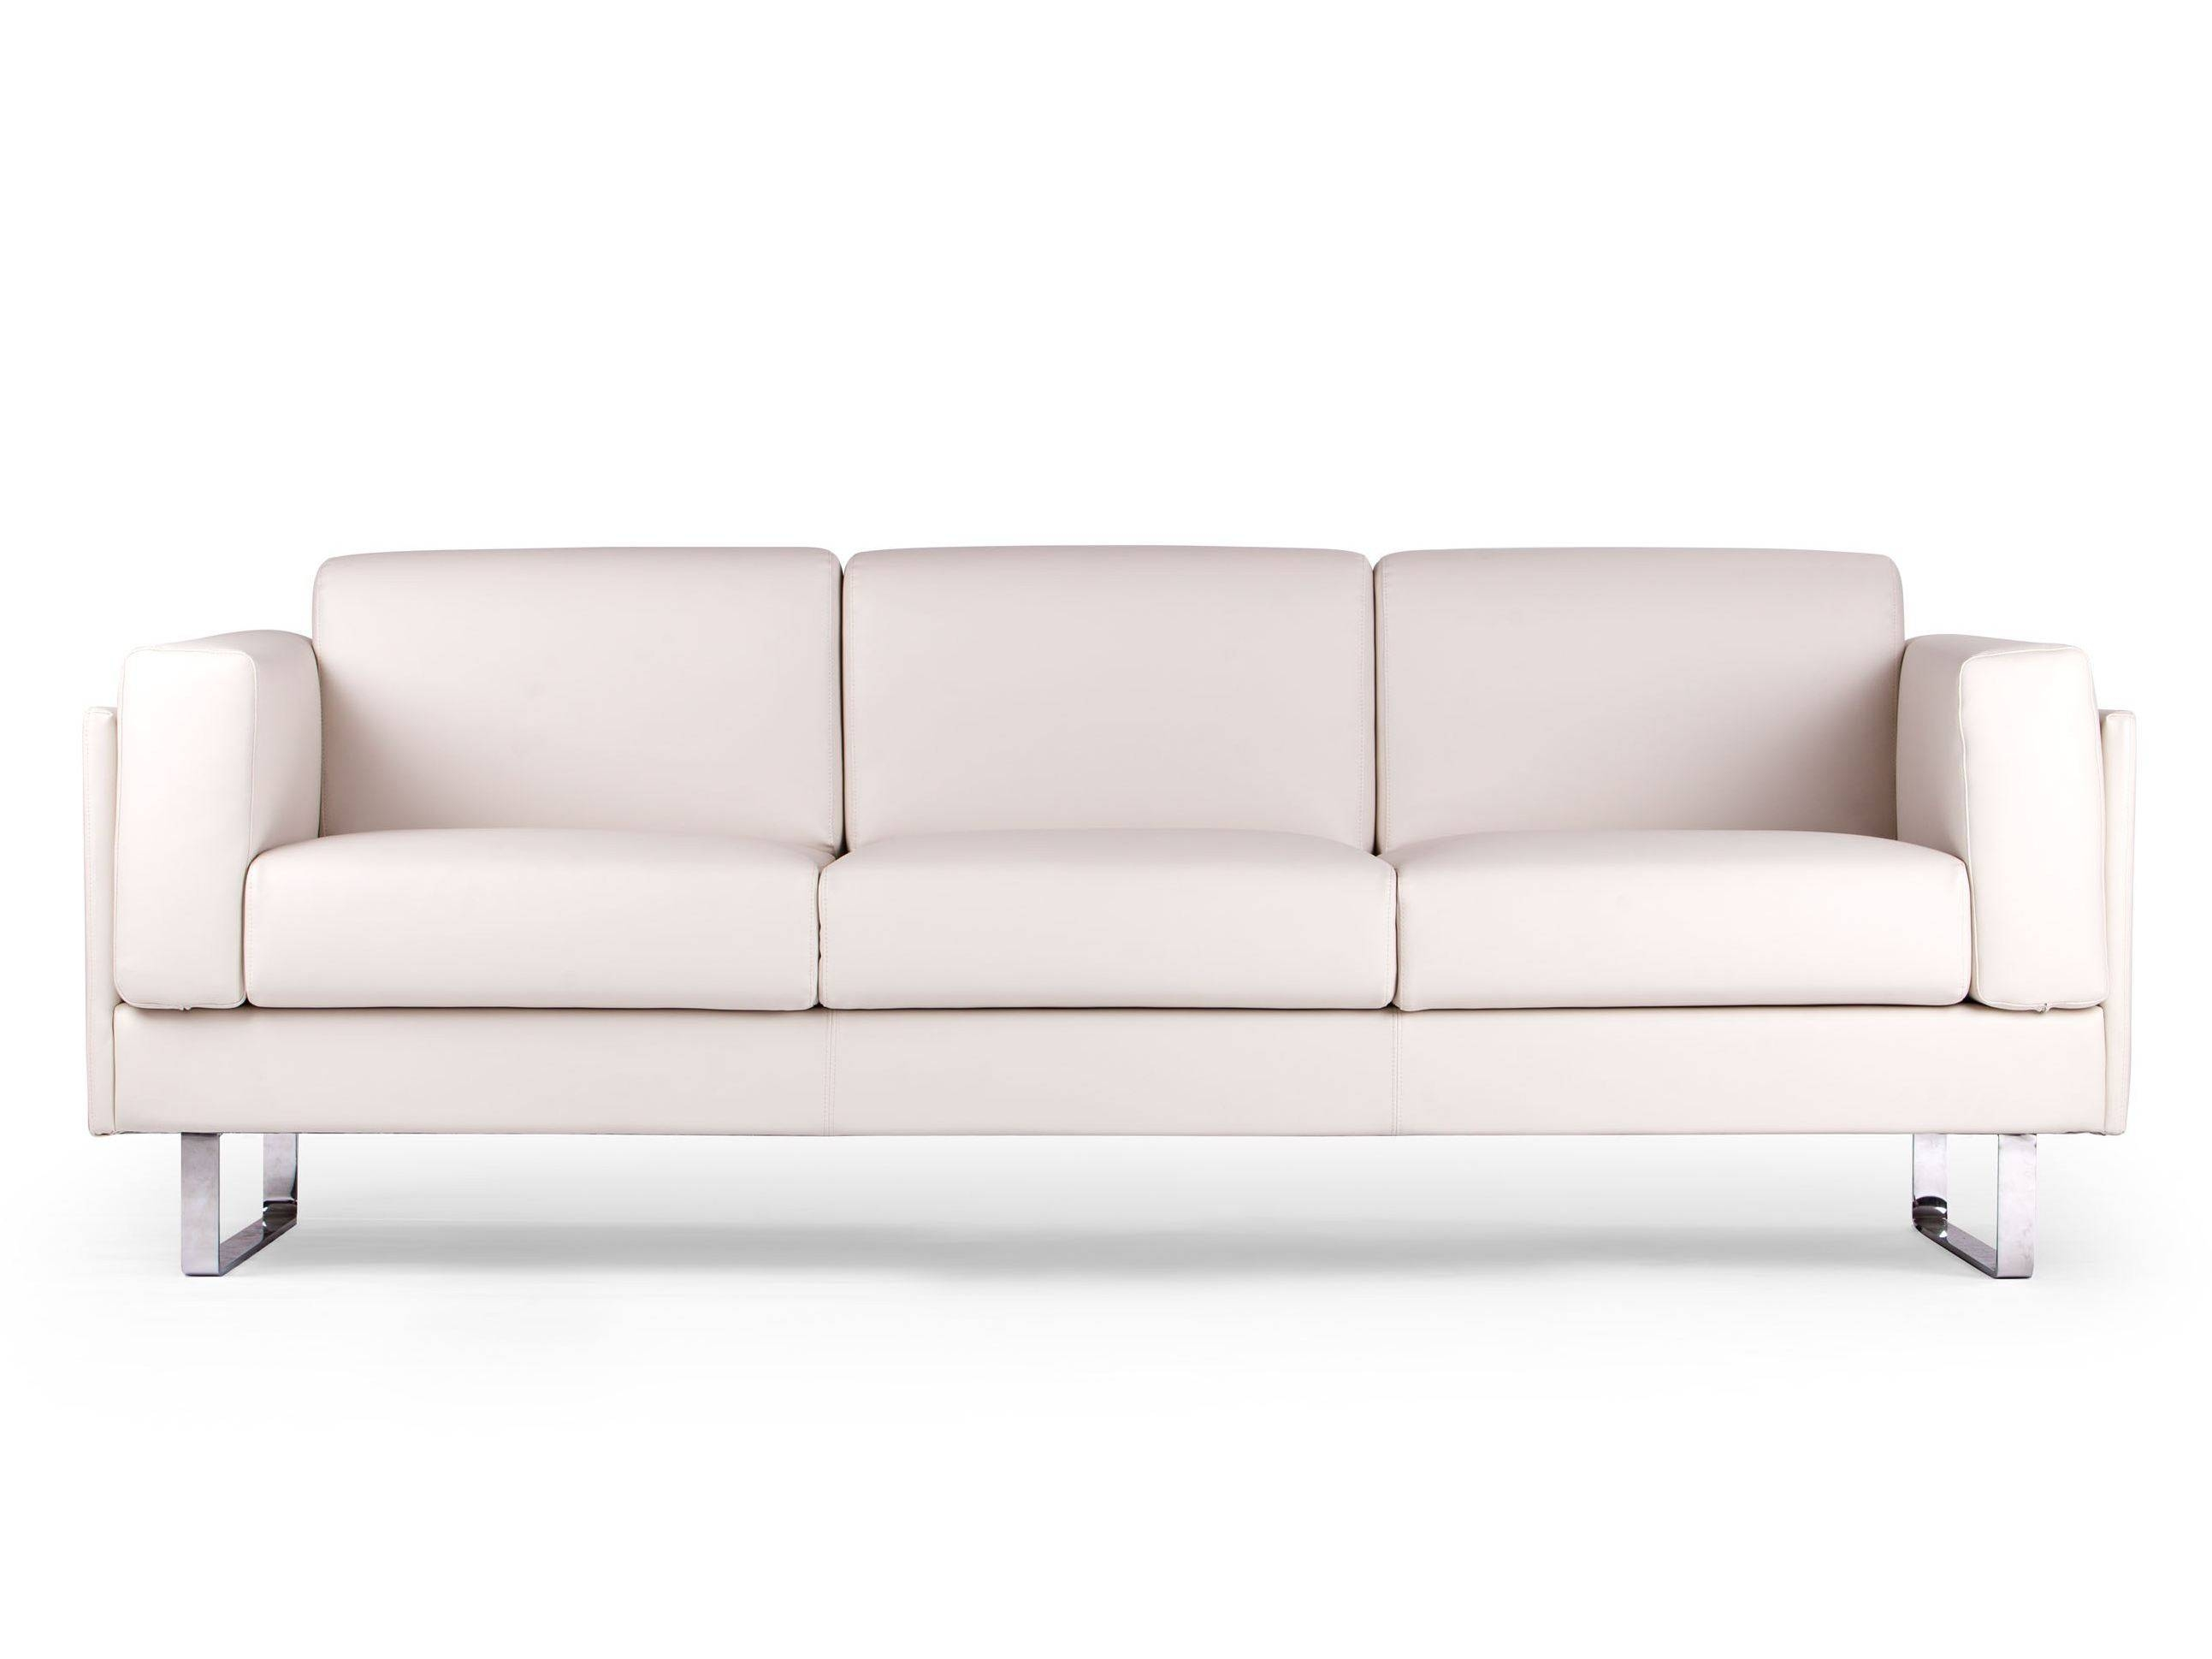 Sofas Center : Seater Sofa Saver Modern Sofas Awesome Picture For Modern 3 Seater Sofas (View 24 of 30)